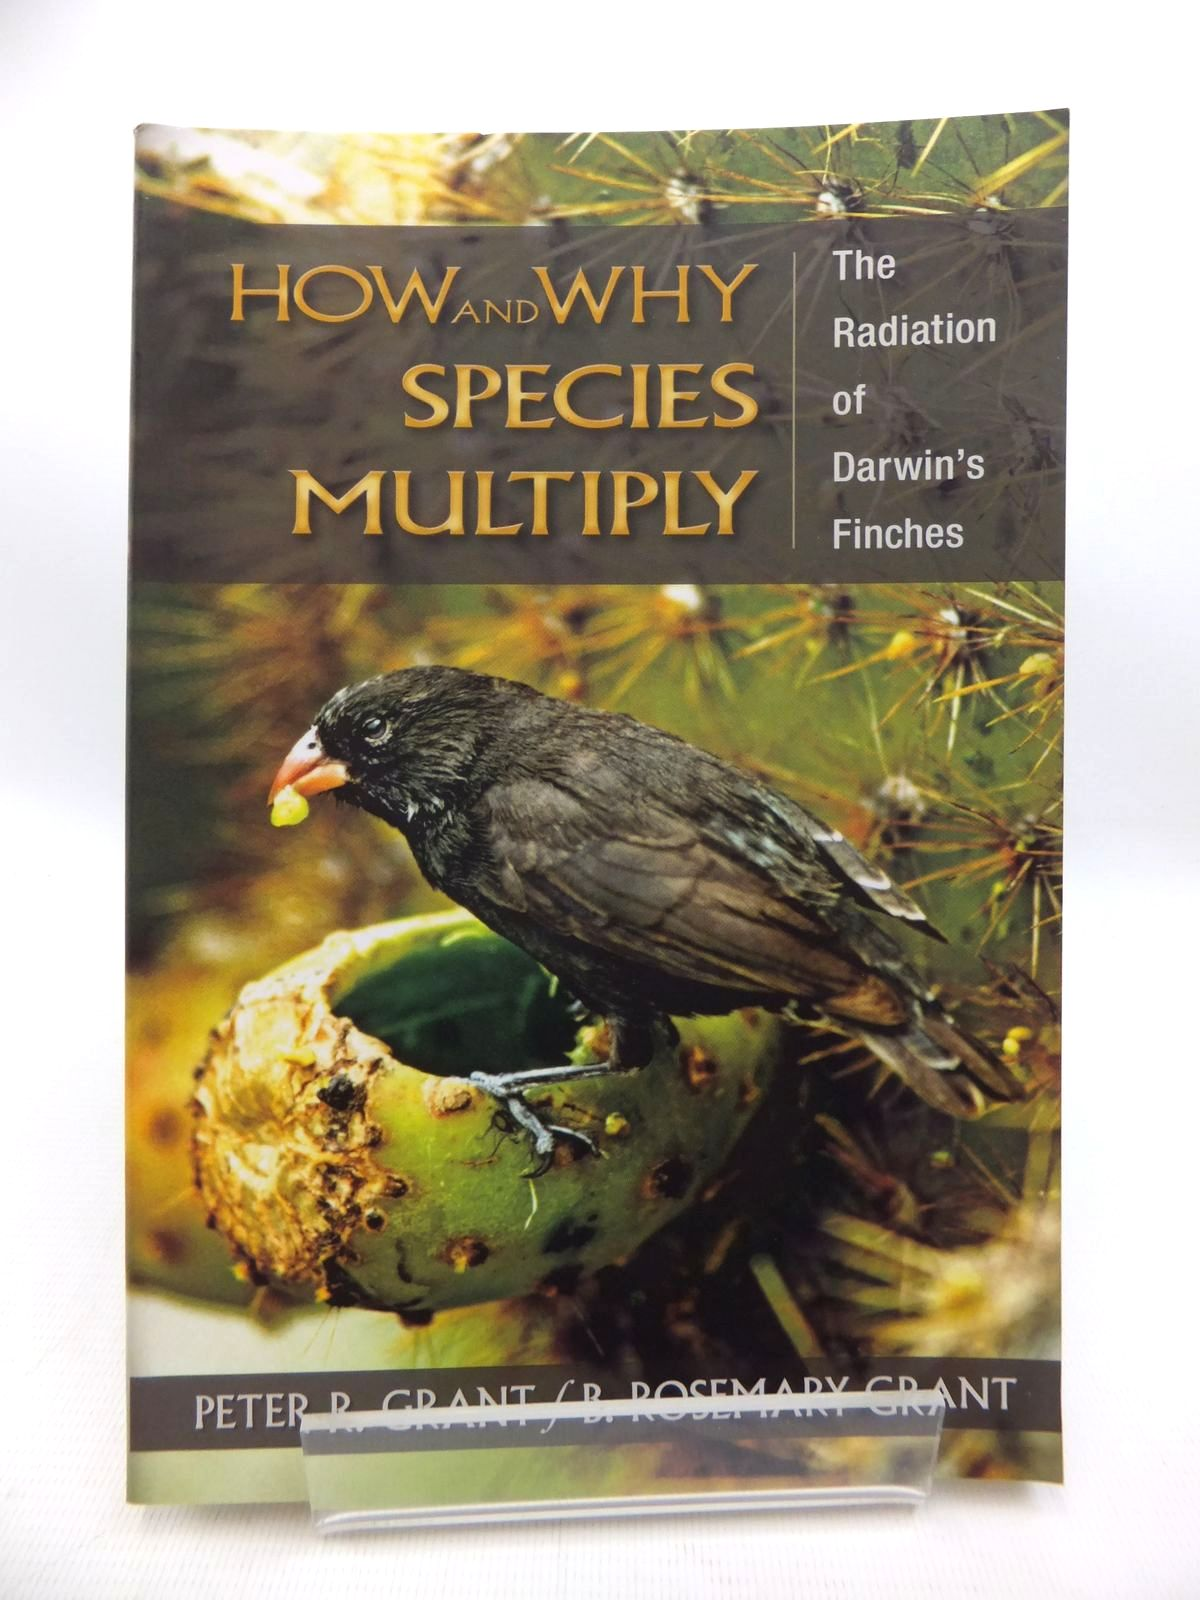 Photo of HOW AND WHY SPECIES MULTIPLY: THE RADIATION OF DARWIN'S FINCHES written by Grant, Peter R. Grant, B. Rosemary published by Princeton University Press (STOCK CODE: 1815192)  for sale by Stella & Rose's Books